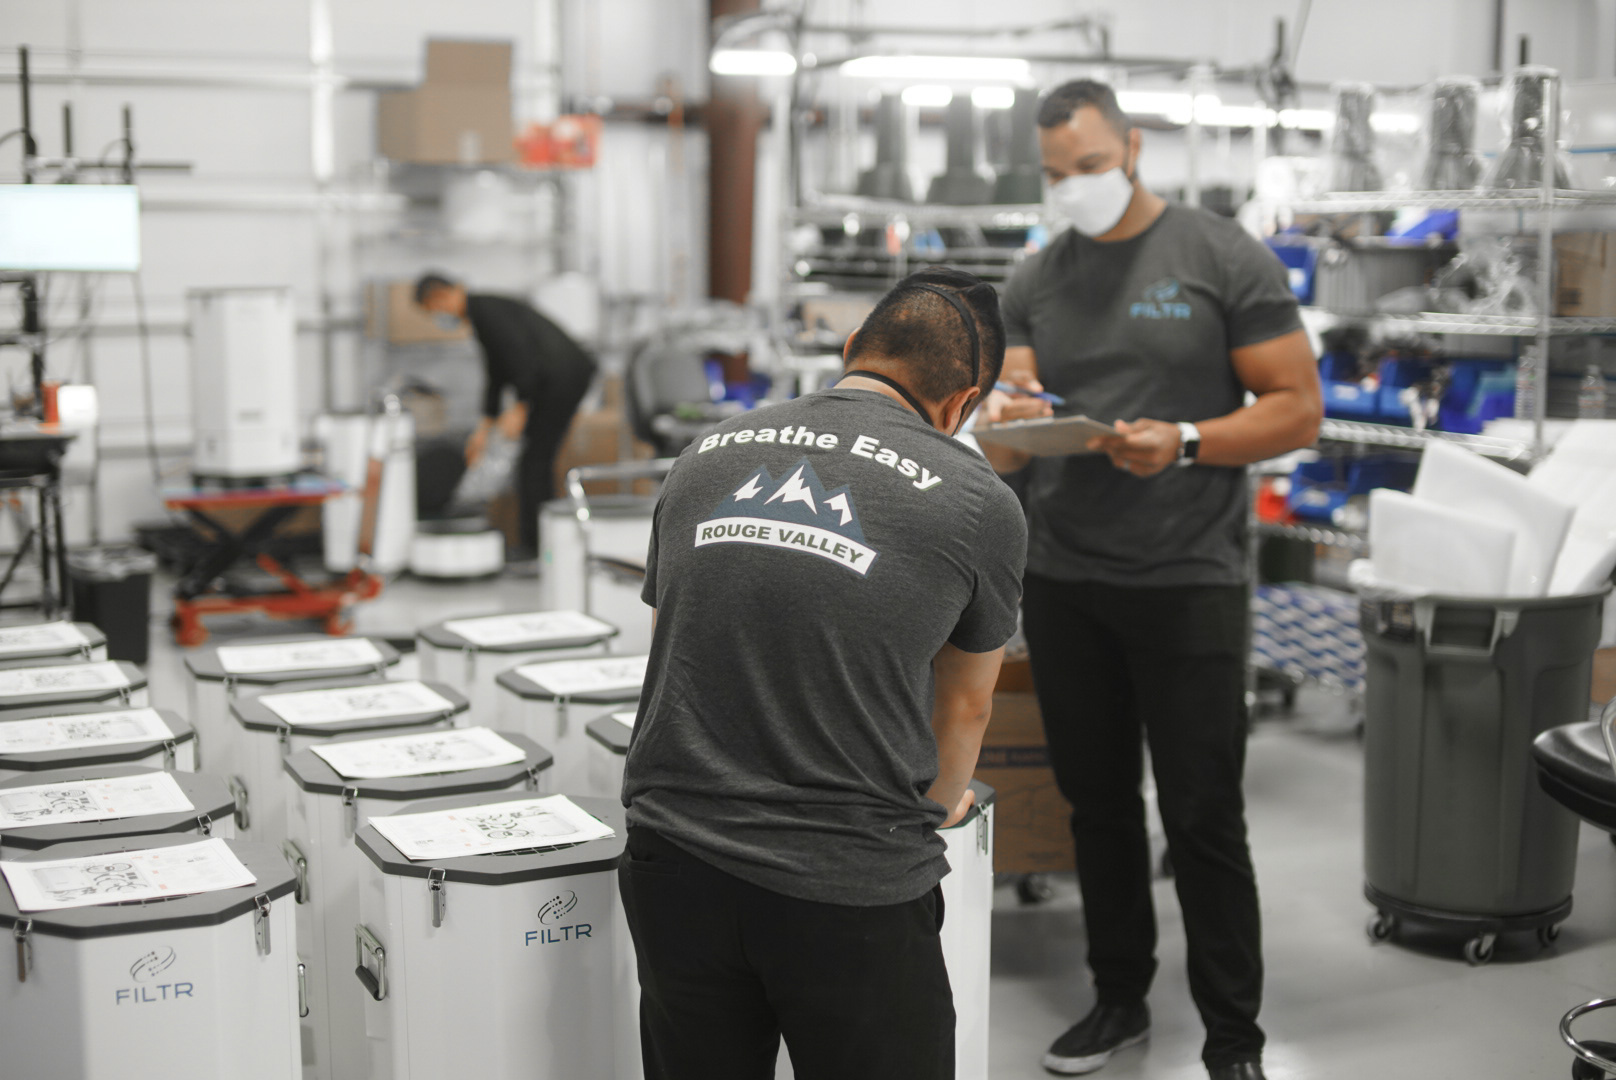 Aighthouse Worldwide Solution and Filtr employees prepare the cleanroom grade air purifiers to be installed in local businesses to help with Southern Oregon air quality.